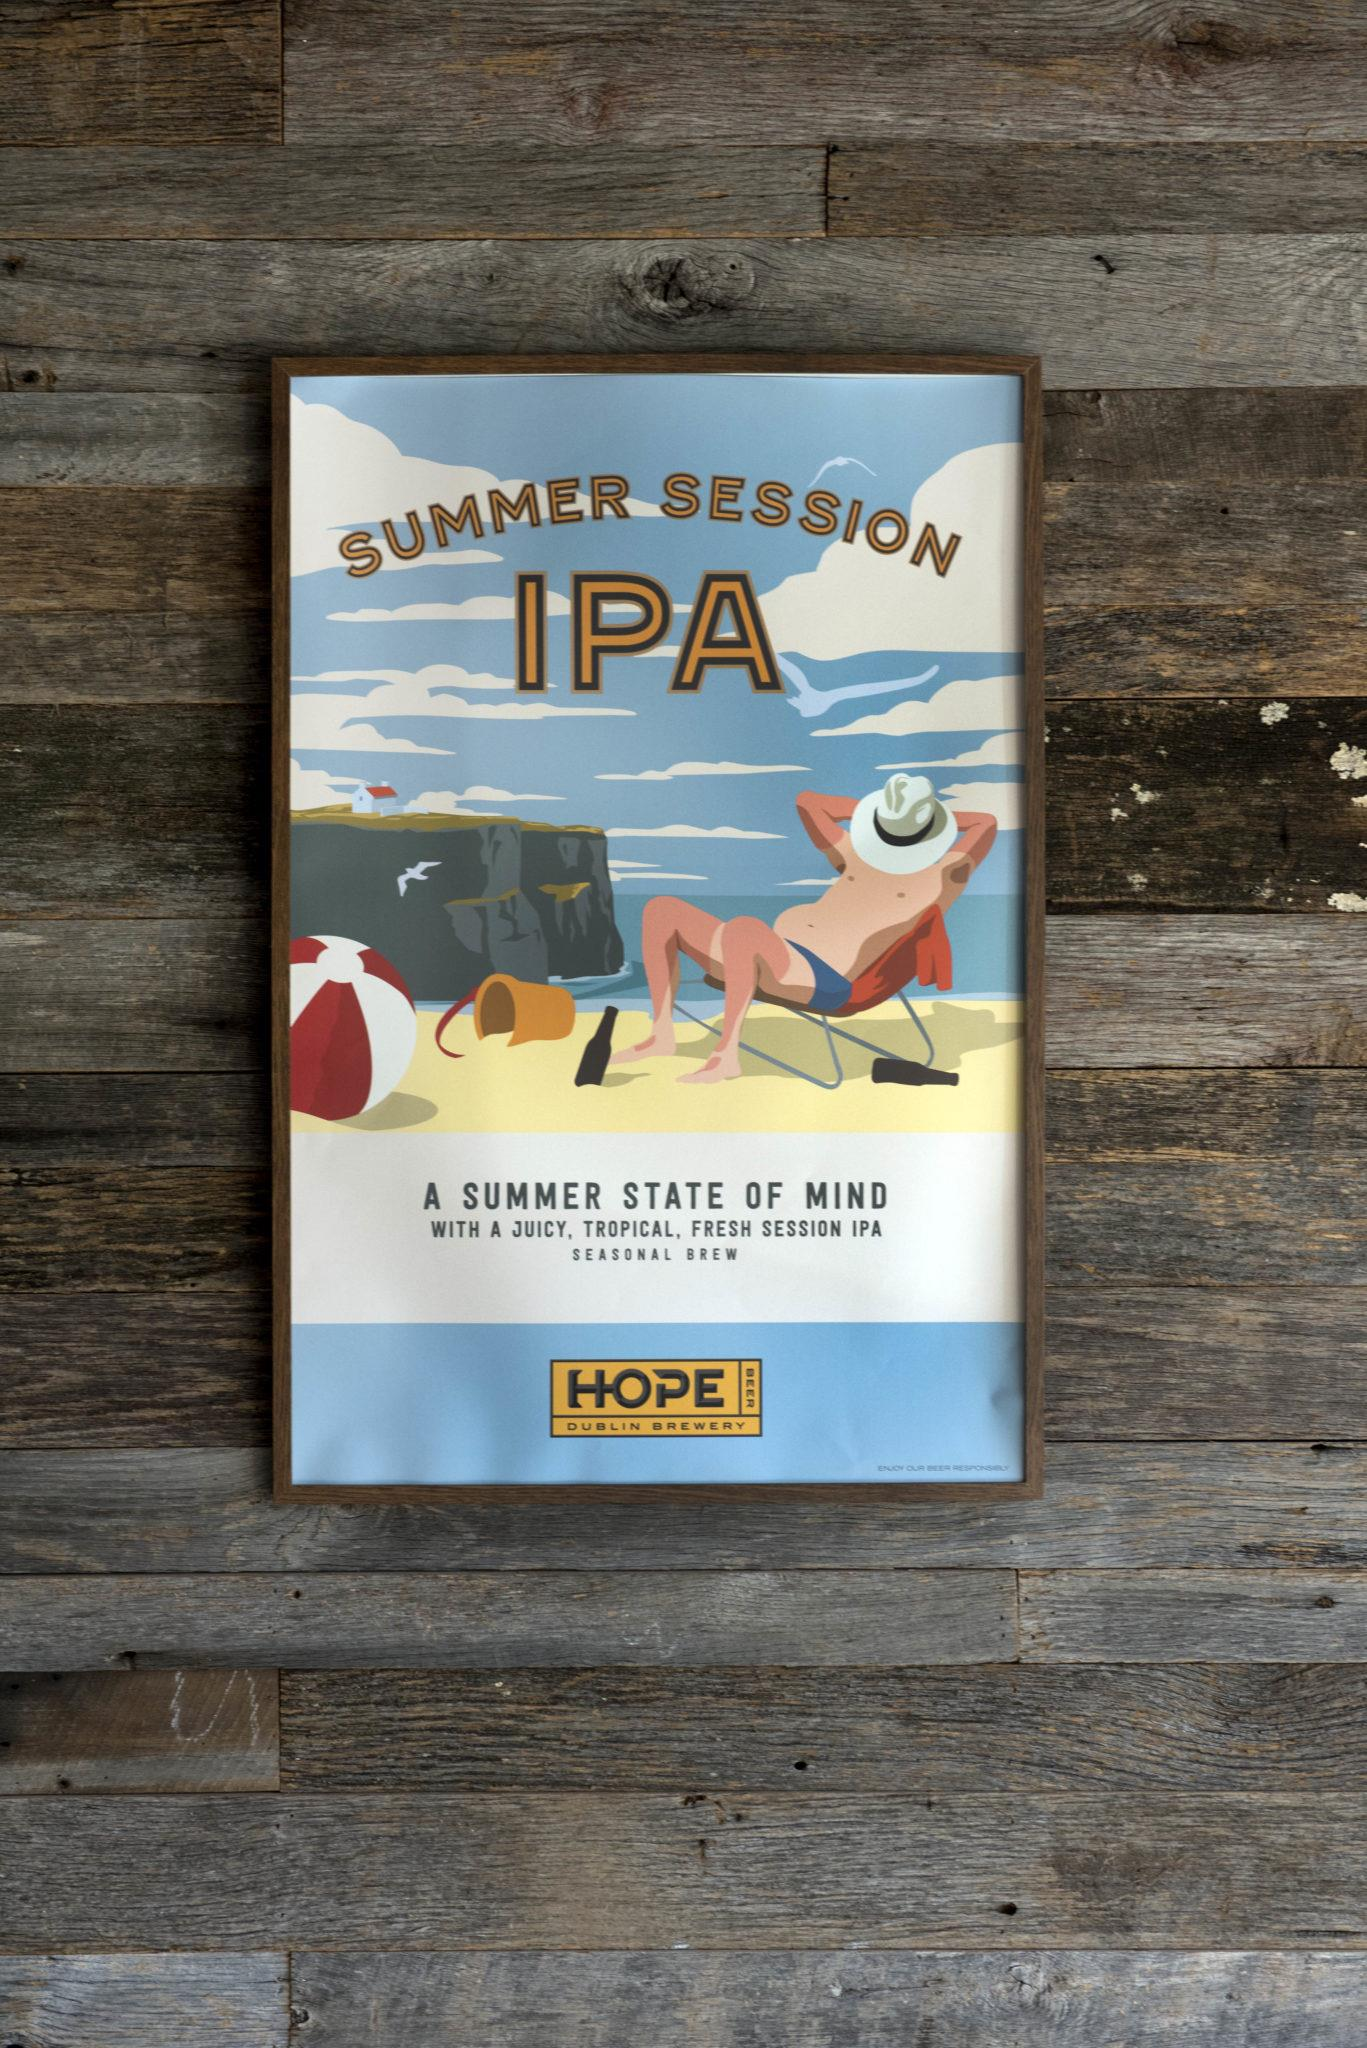 Summer Session IPA